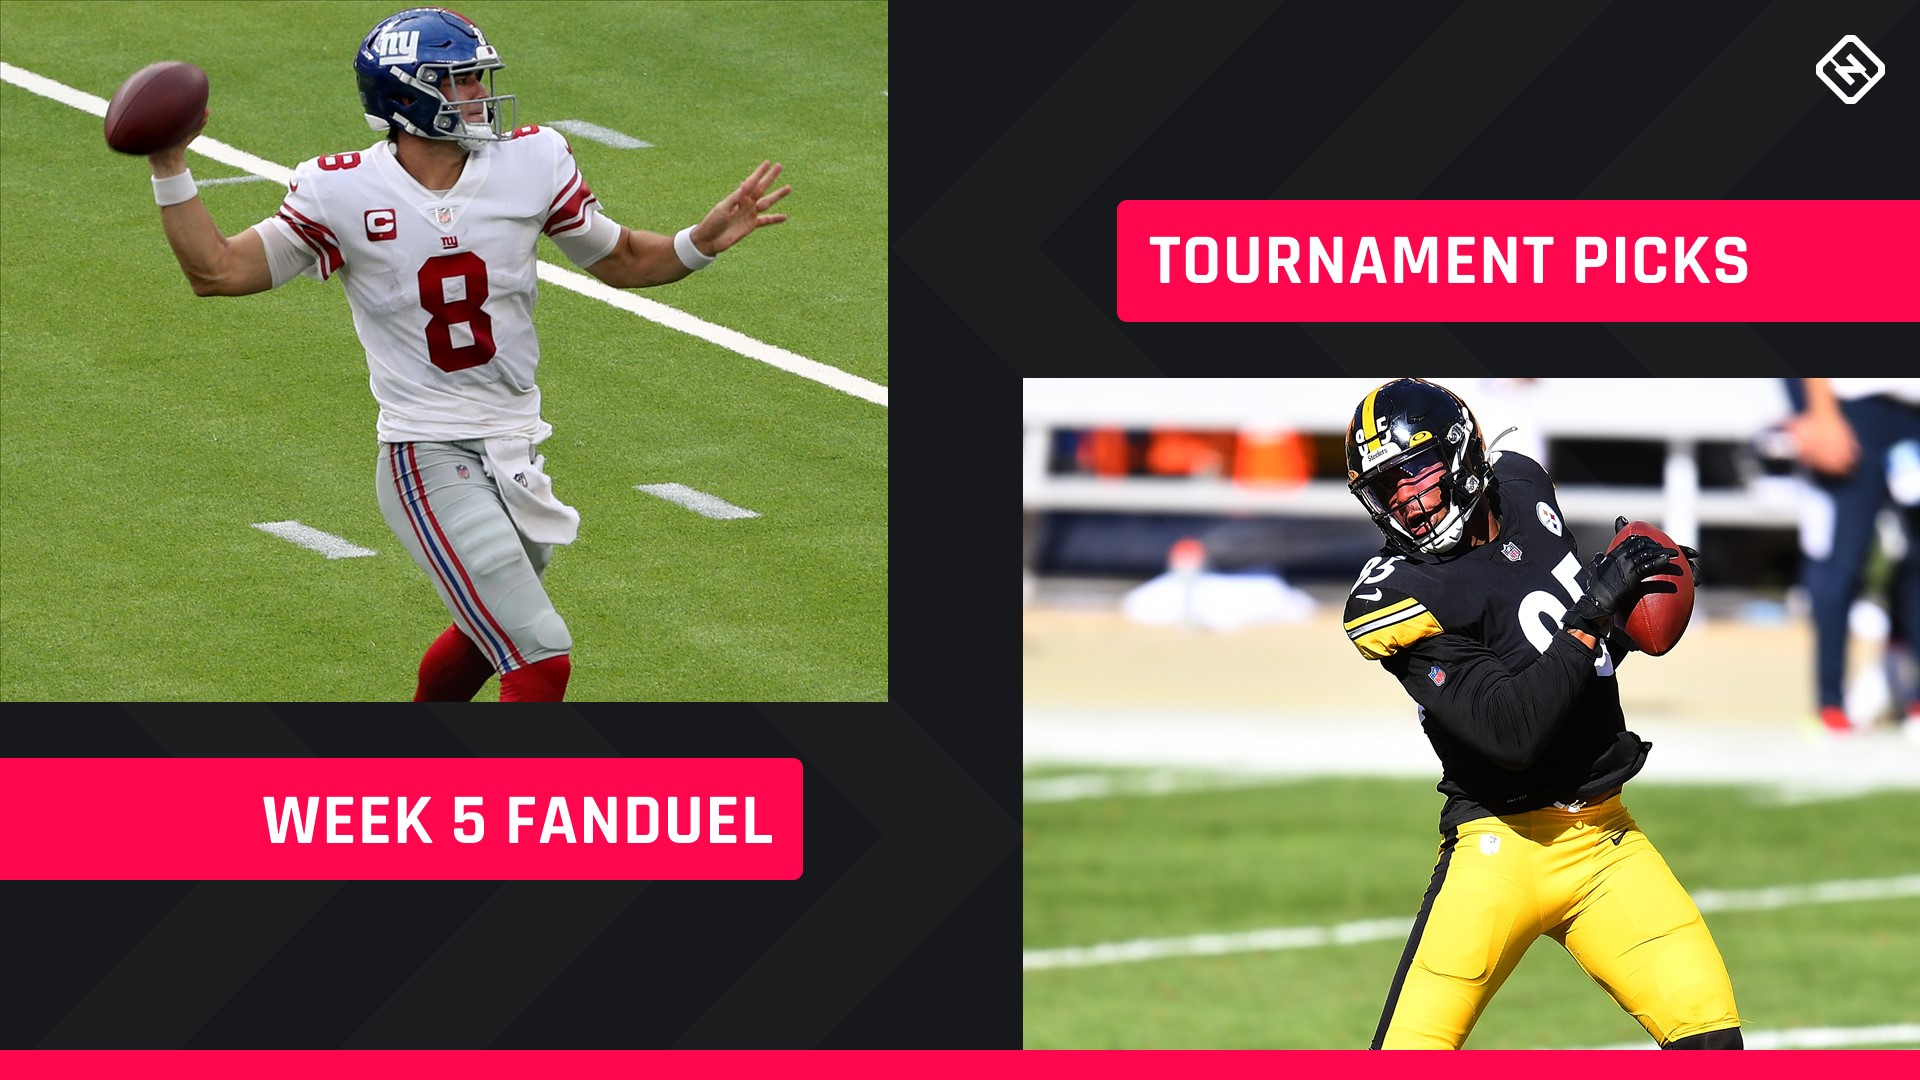 Week 5 FanDuel Picks: NFL DFS lineup advice for daily fantasy football GPP tournaments